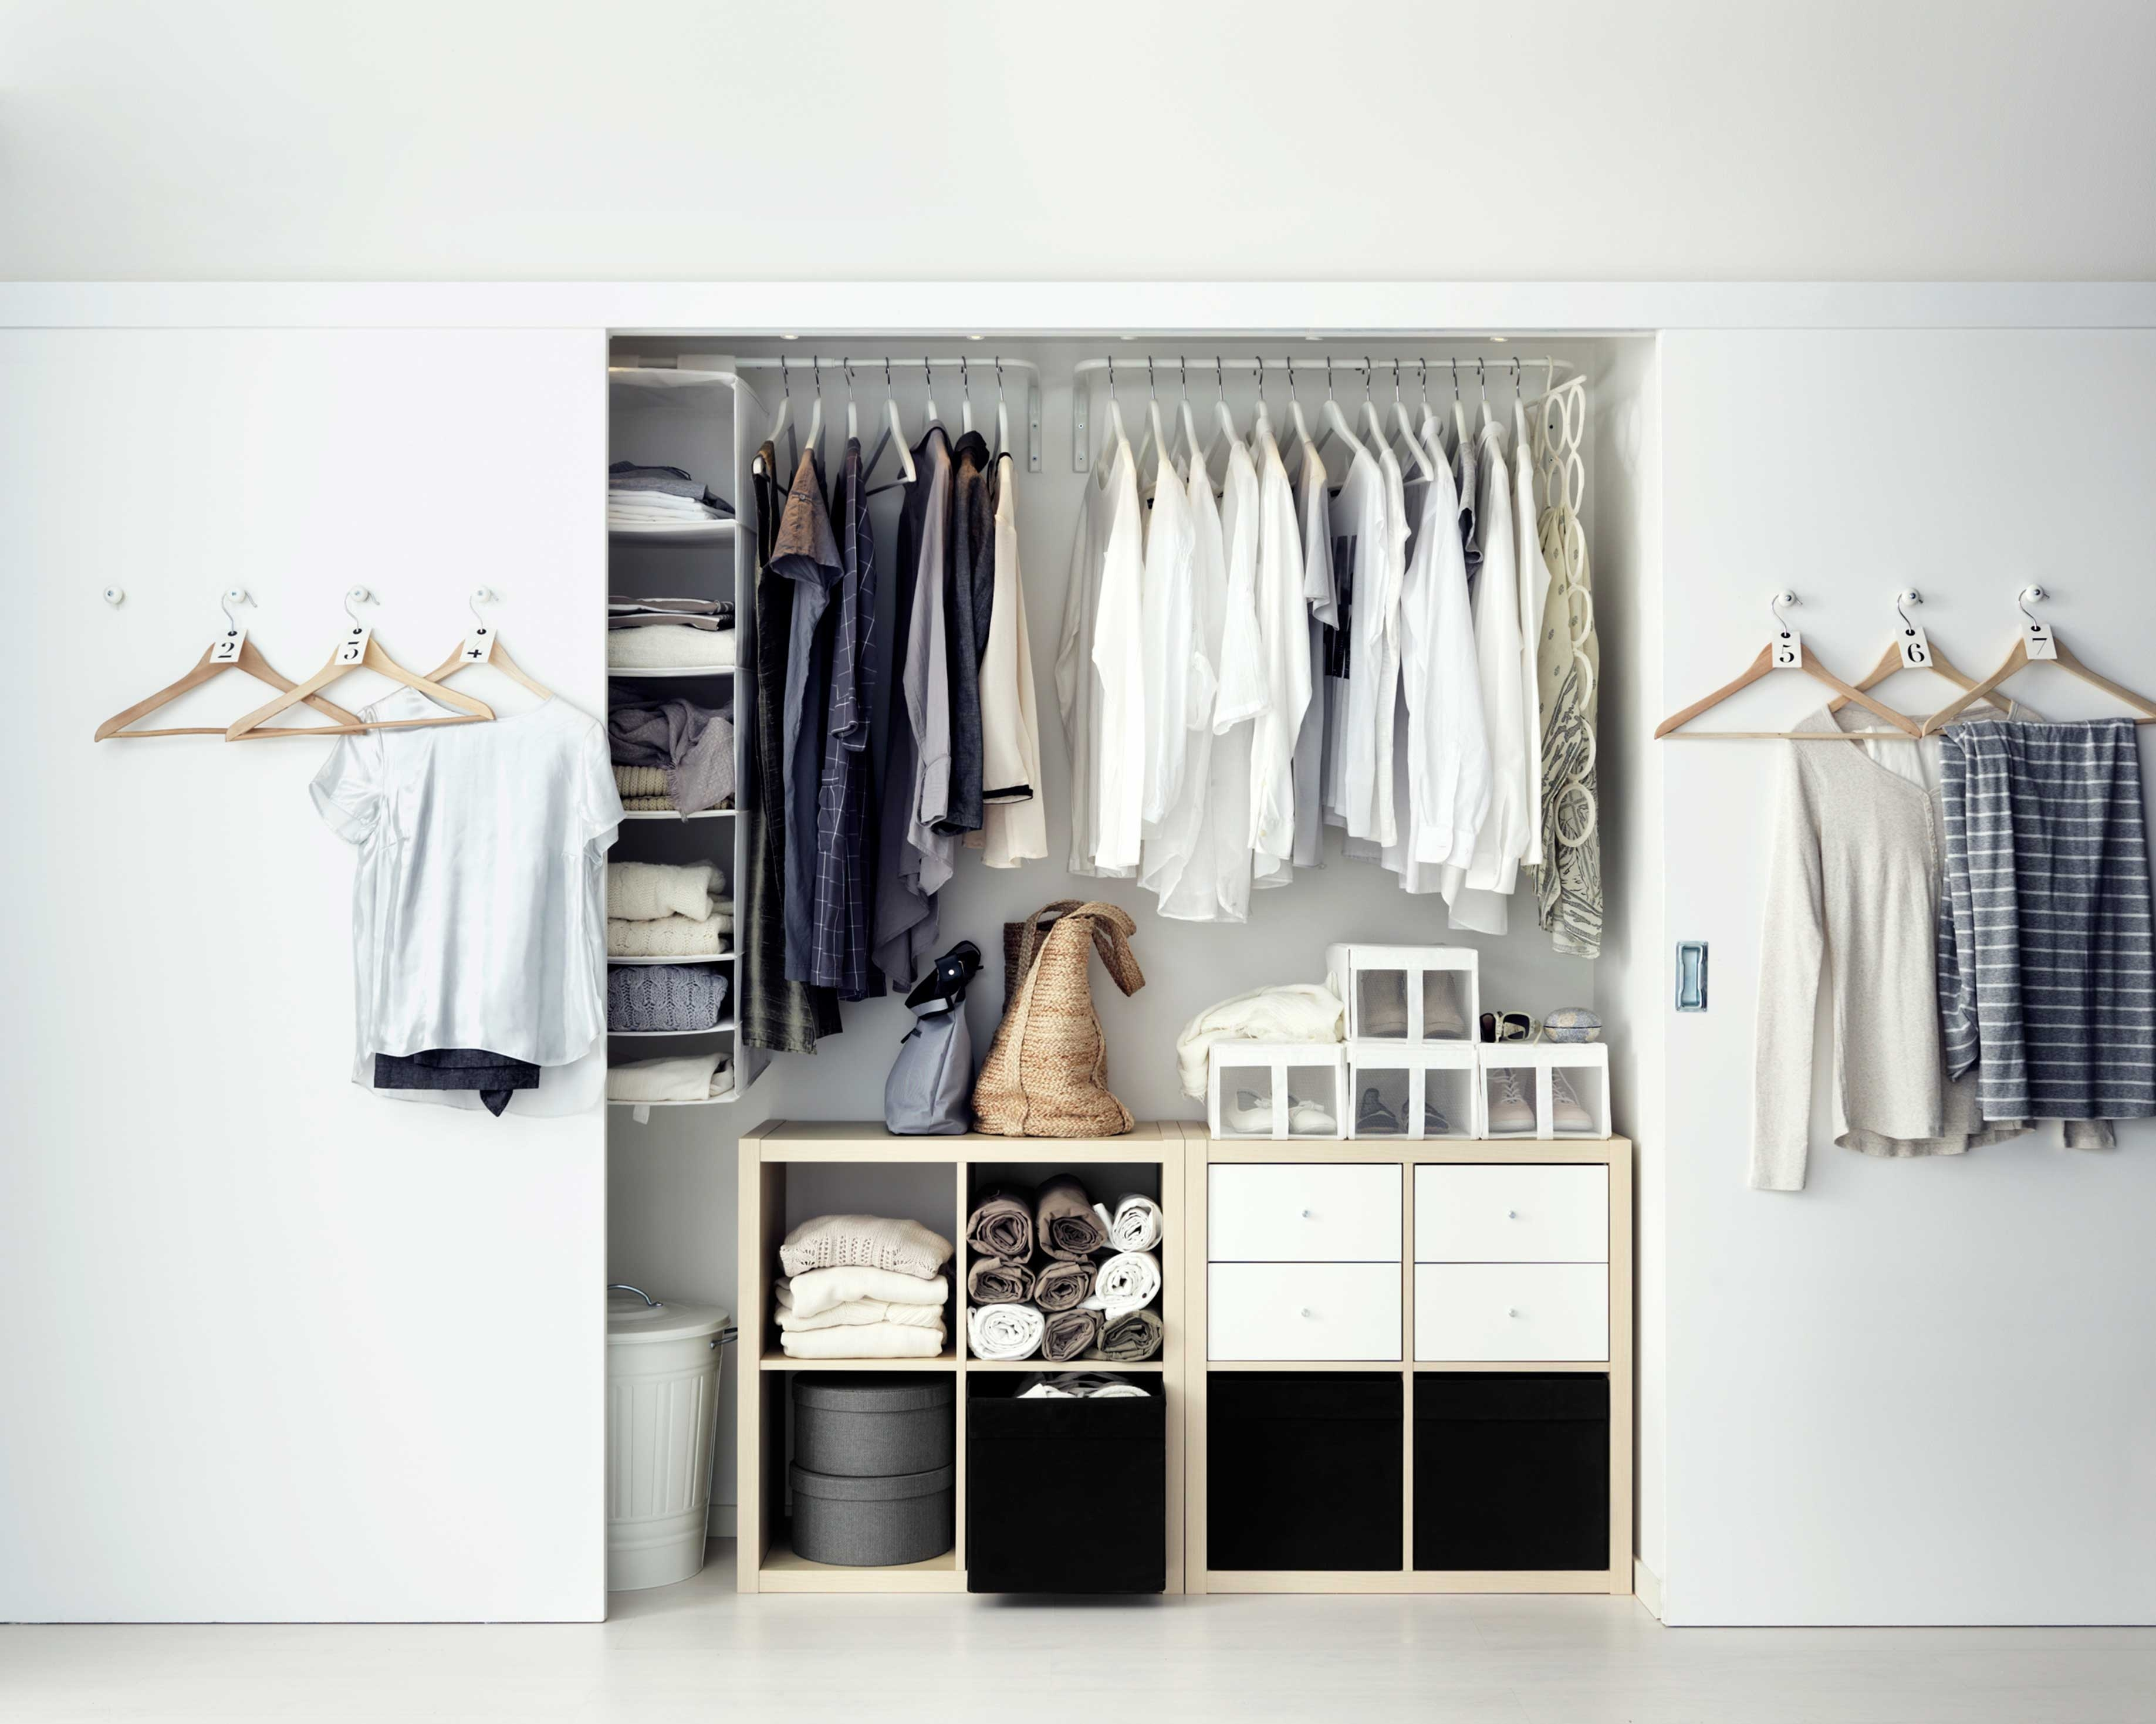 system design systems to rubbermaid the drawer drawers your size storage shelf organizer kids home have of dreams full affordable coat clothes standing inserts free freestanding open closet how in hanging